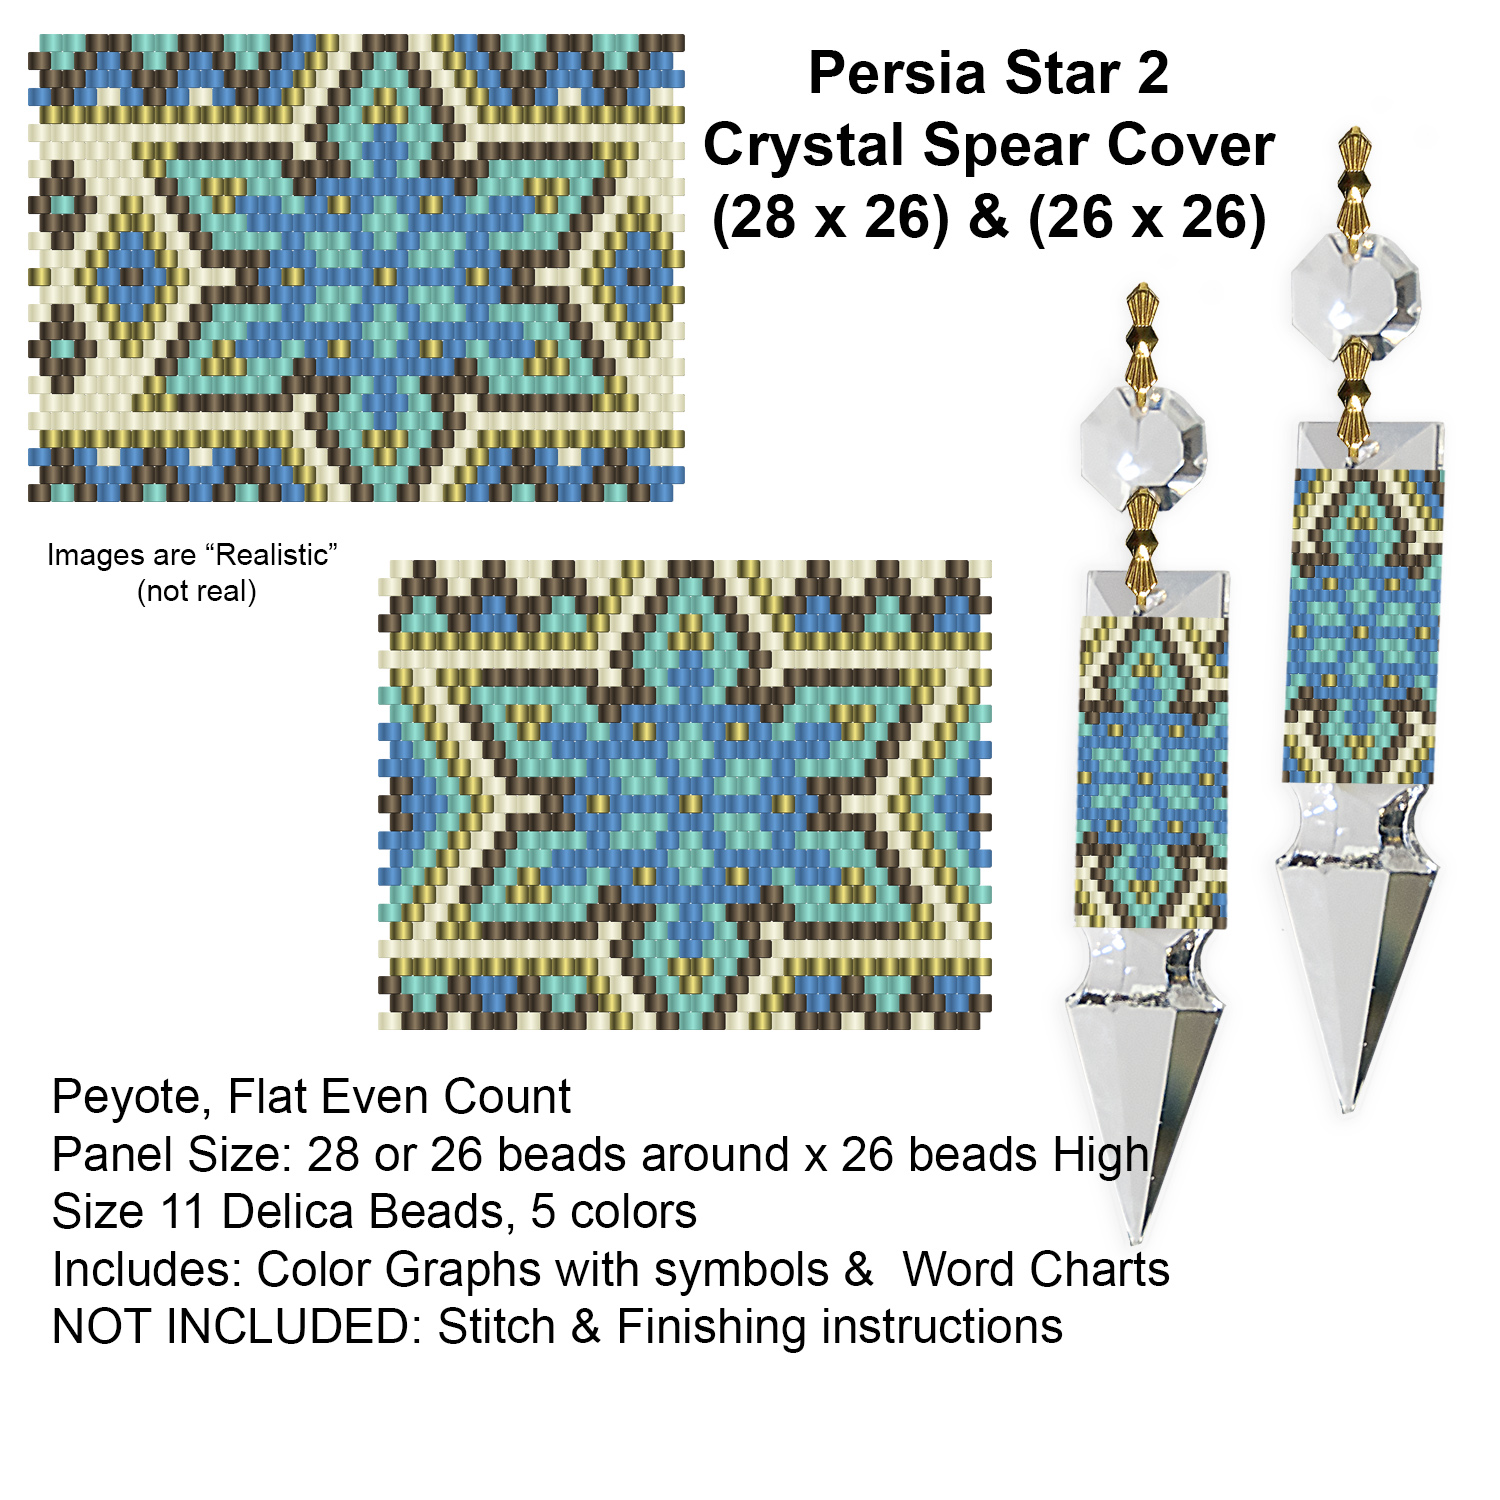 Persia Star 2 Crystal Spear Covers